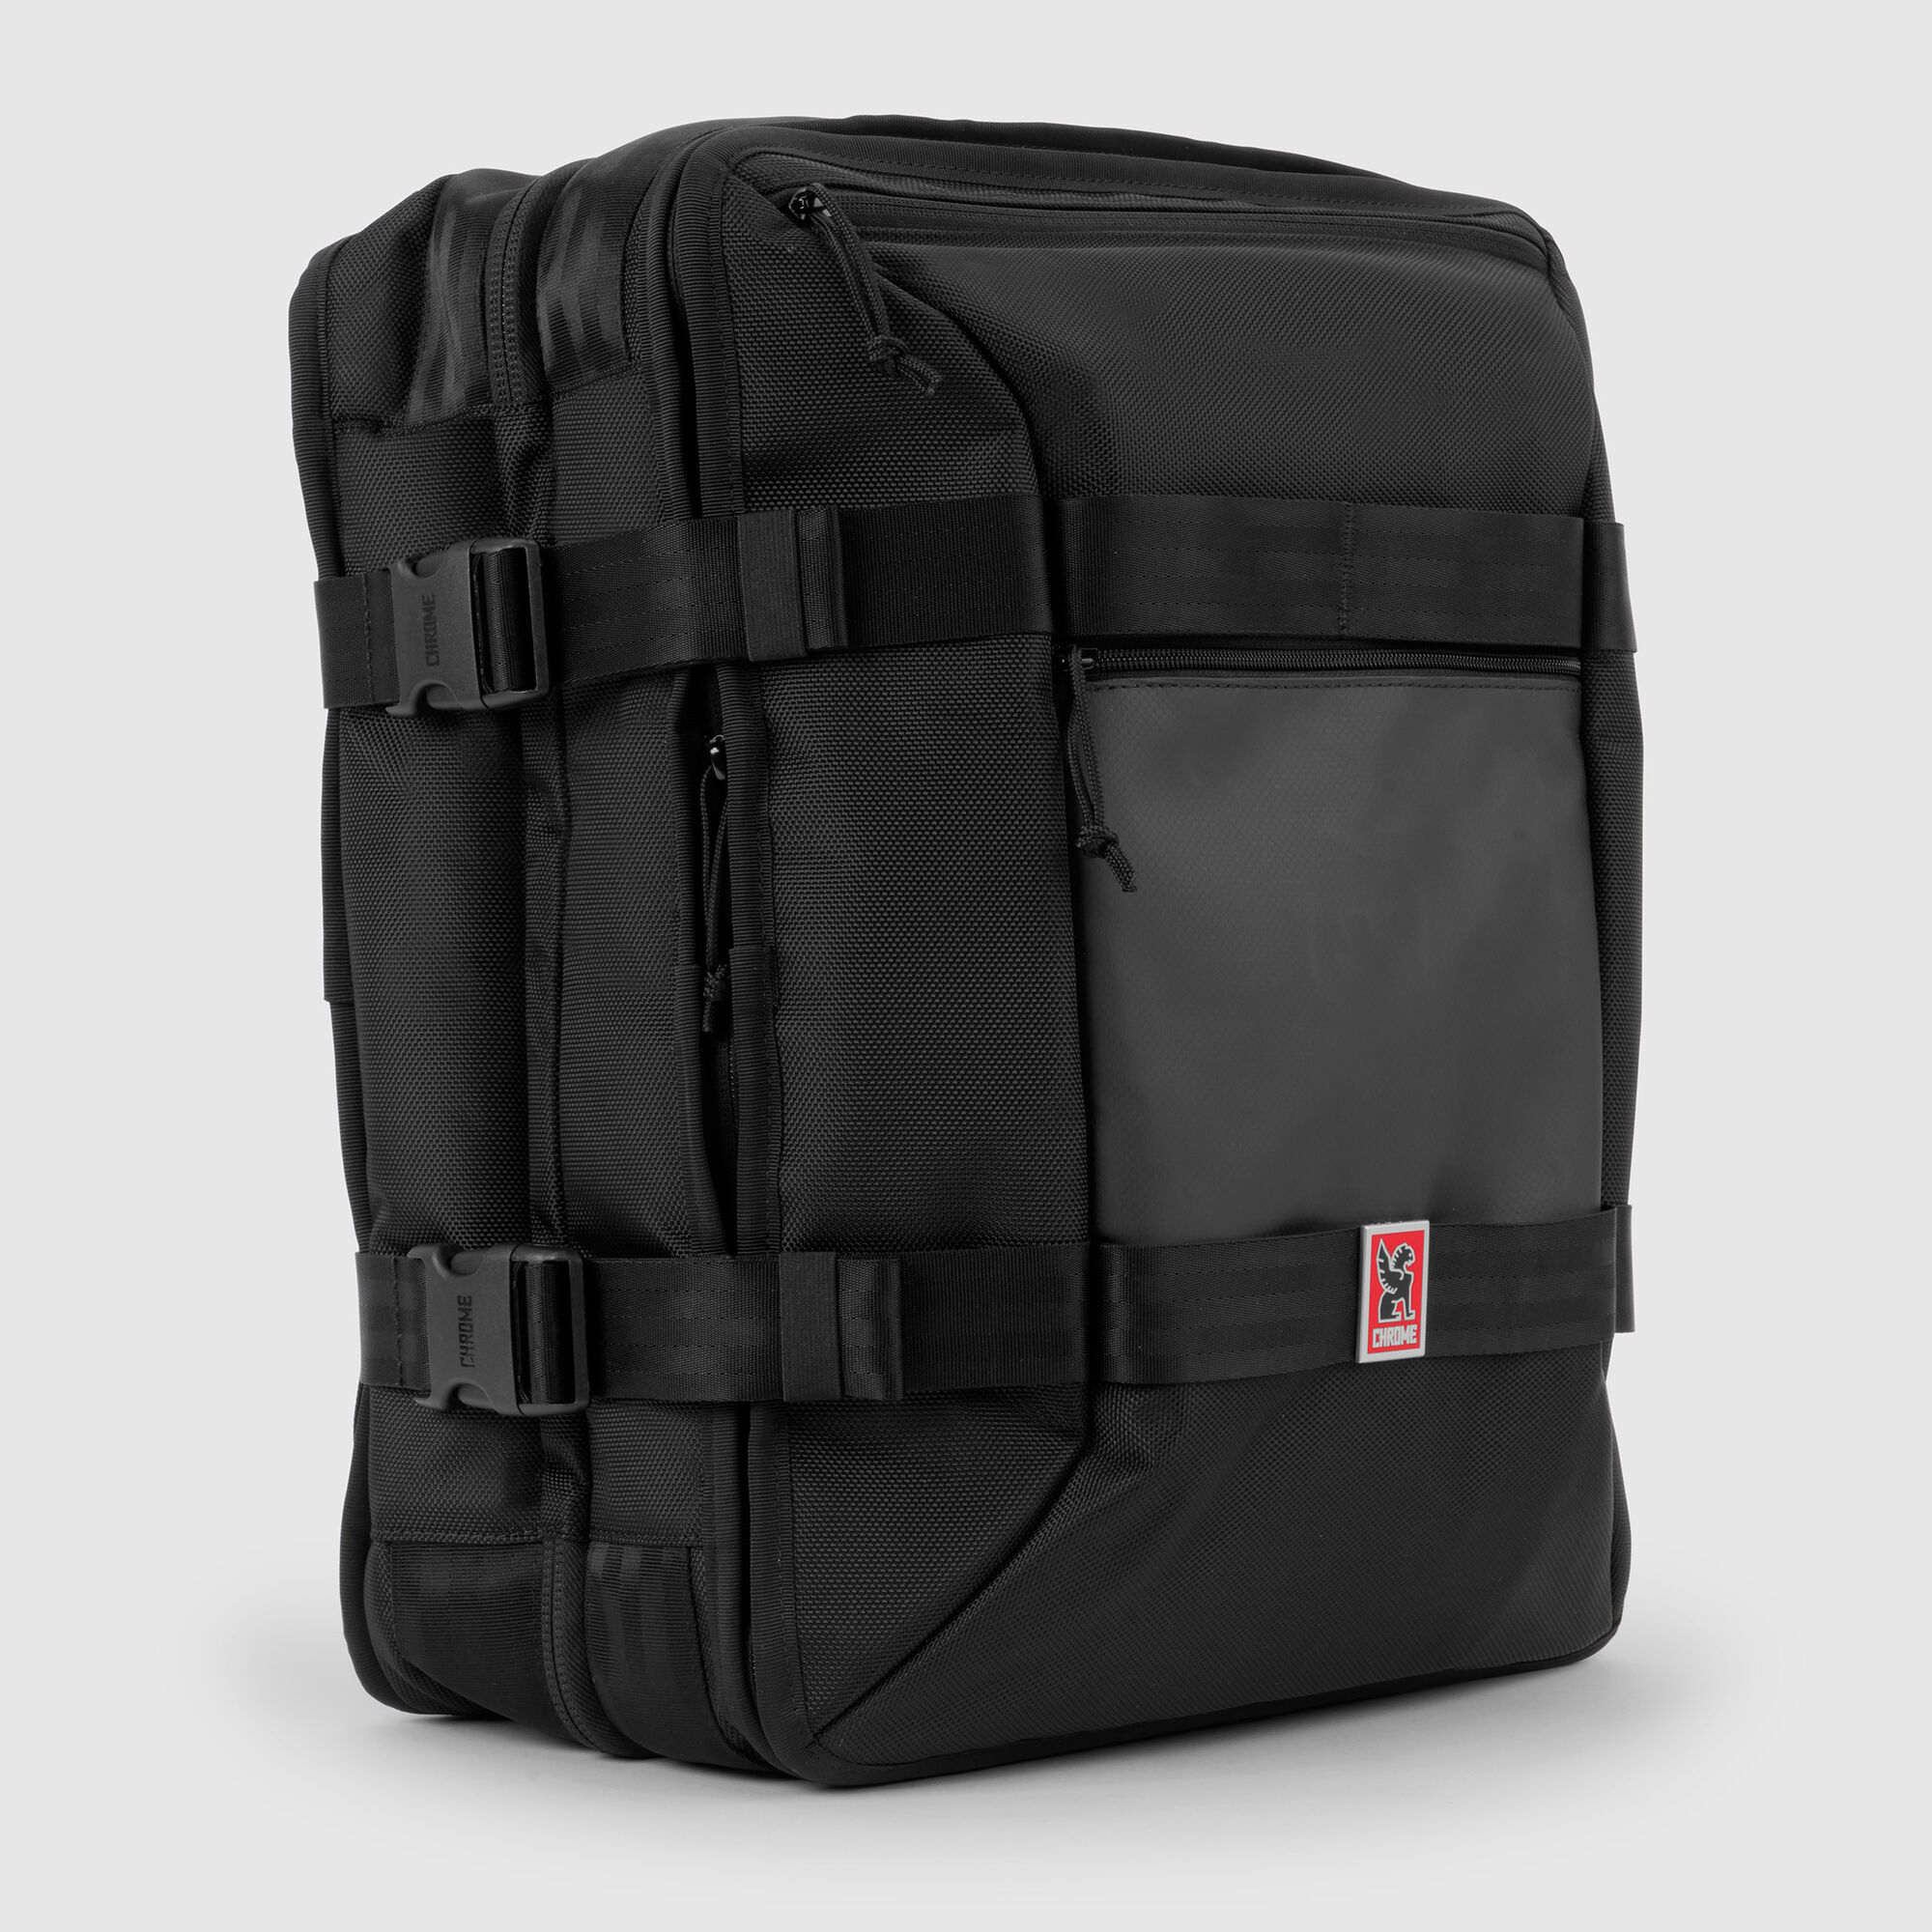 Macheto travel pack in black small view